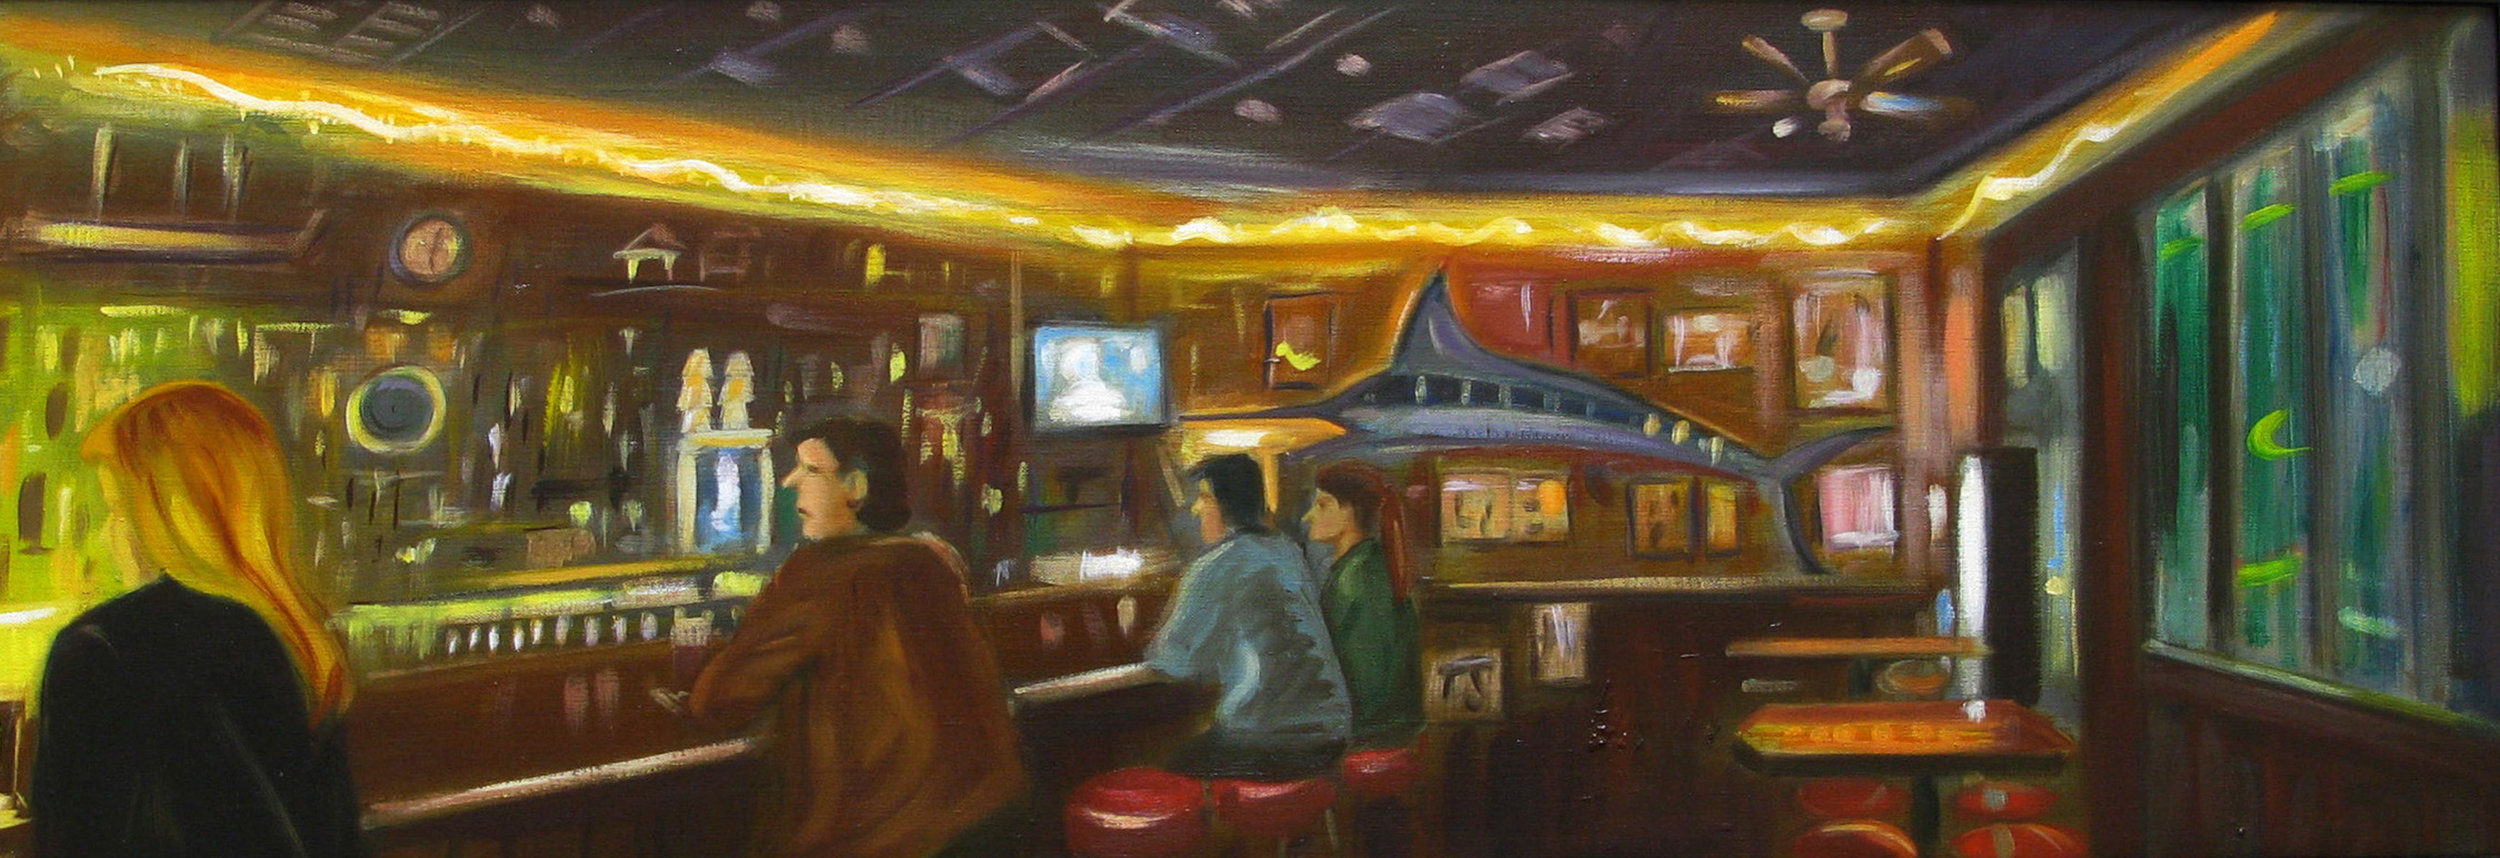 Raul Guerrero  The Waterfront Bar and Grill: San Diego –A, 2009  Oil on linen 16 x 46 inches (40.6 x 116.8 centimeters)